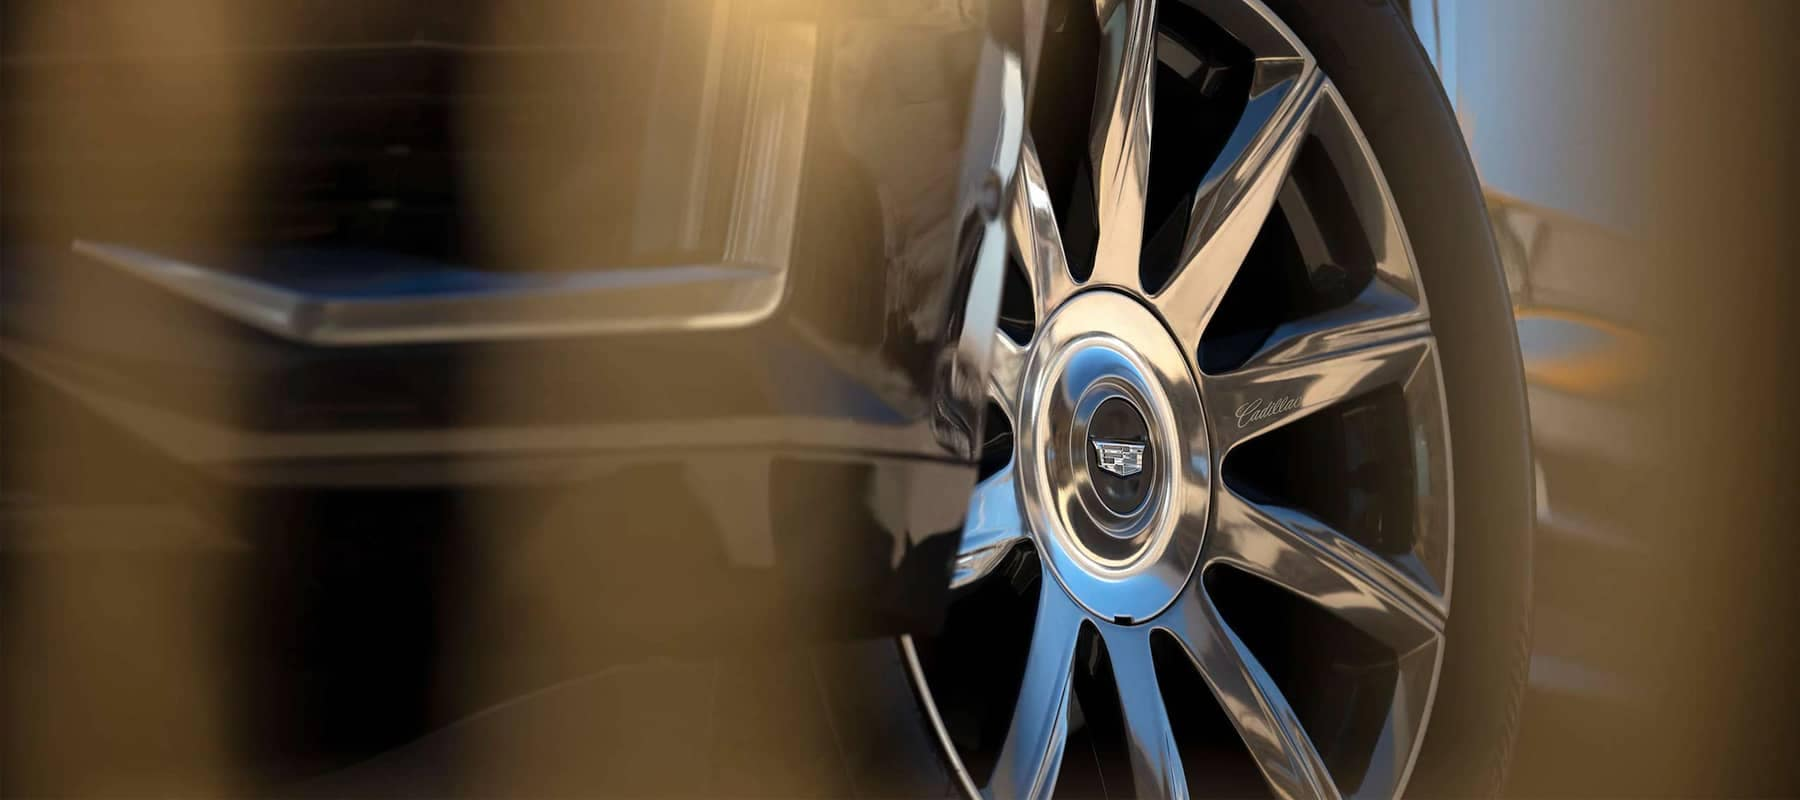 Close up view of Cadillac wheel and rim